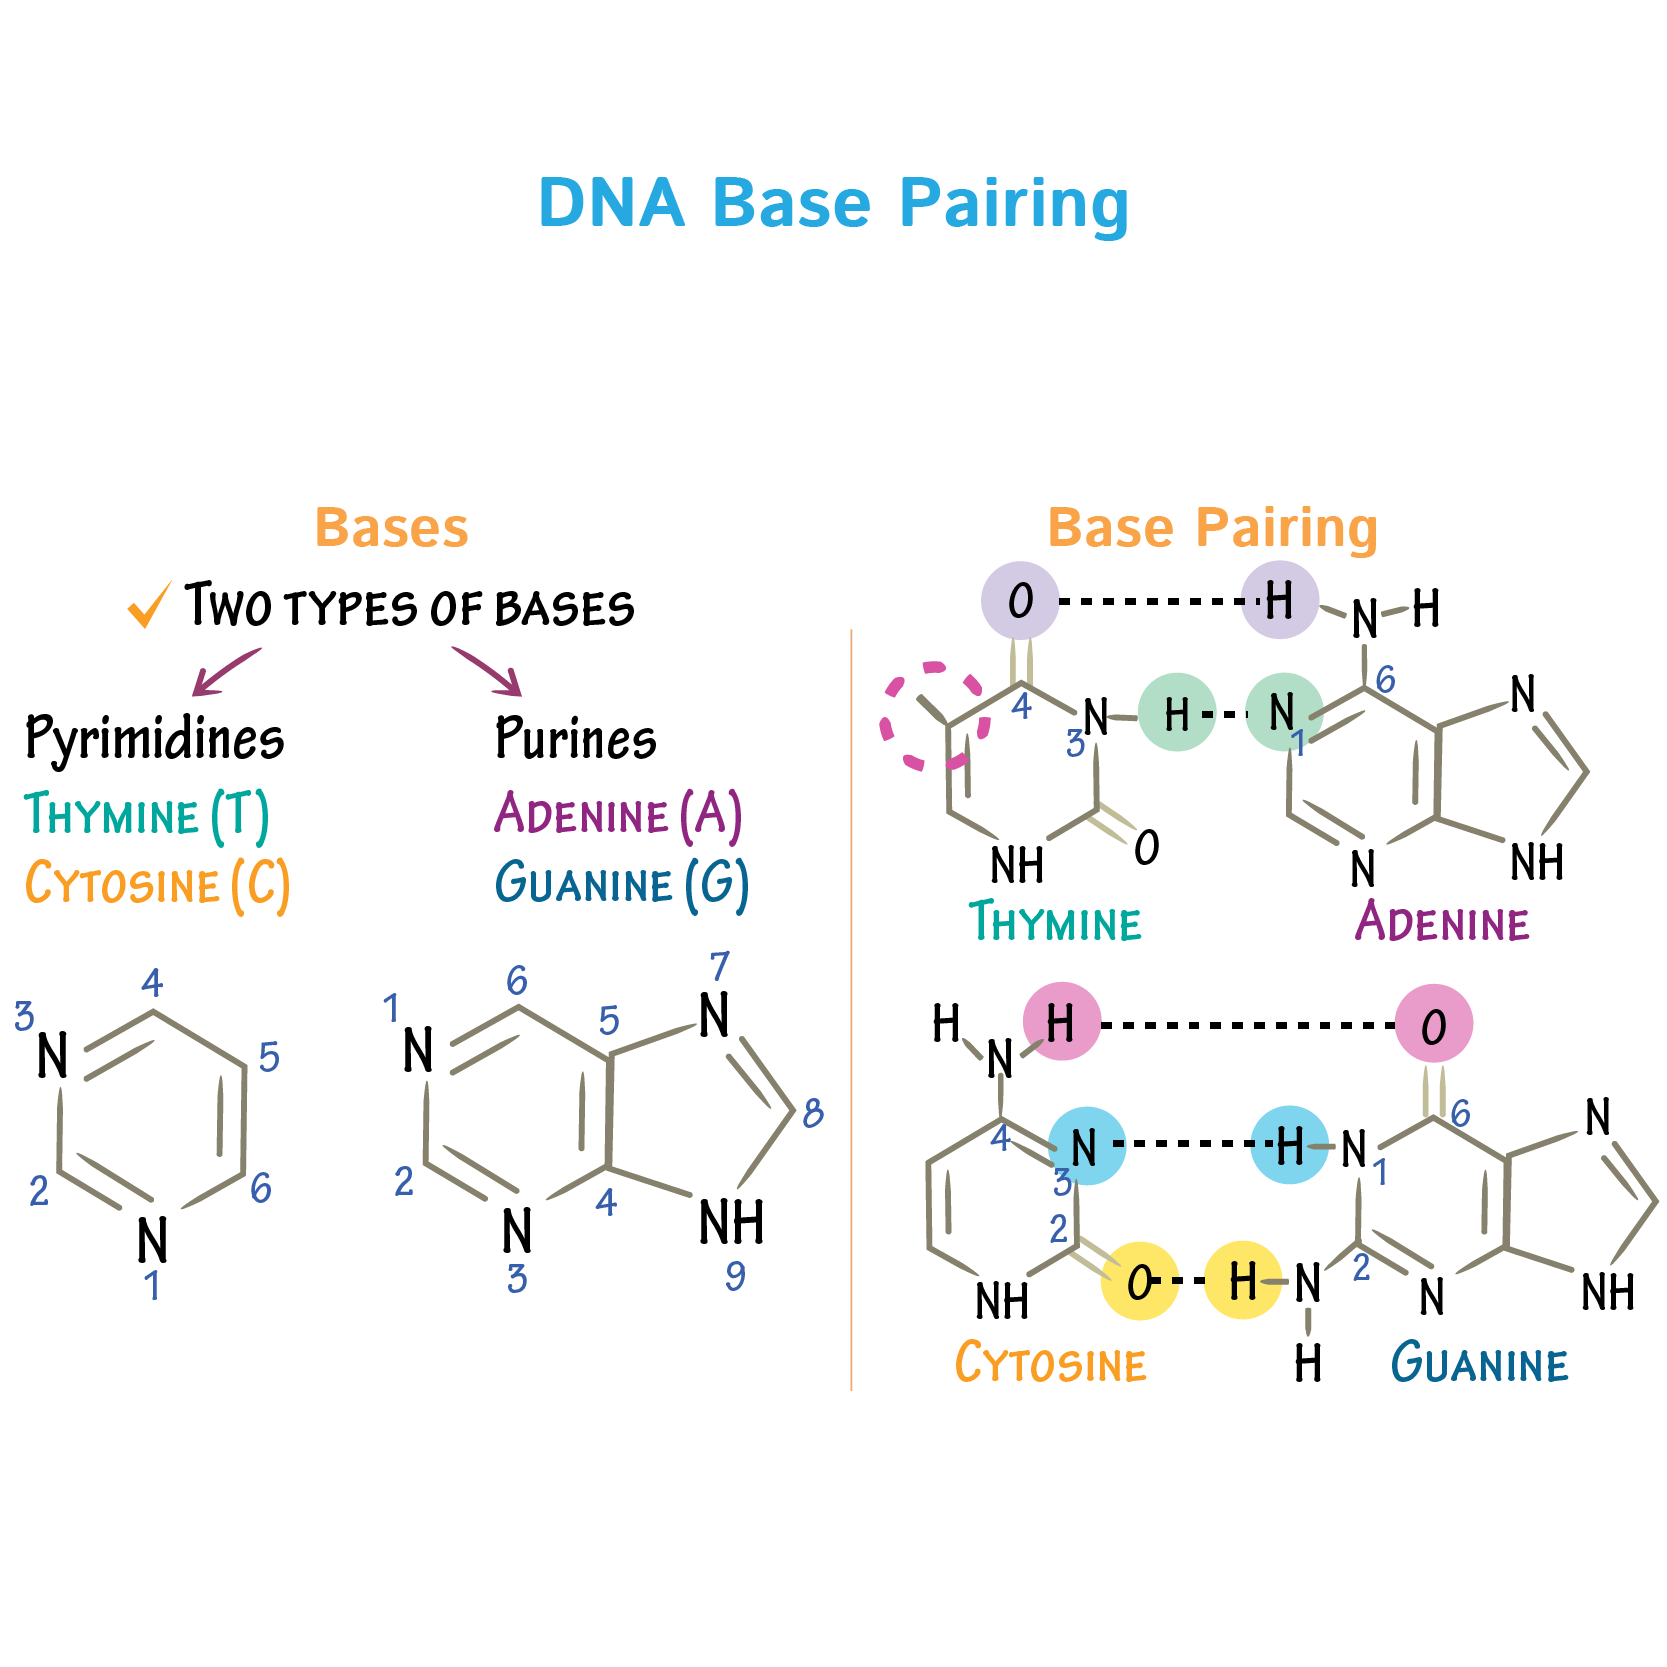 dna base pairing draw it to know it [ 1667 x 1667 Pixel ]